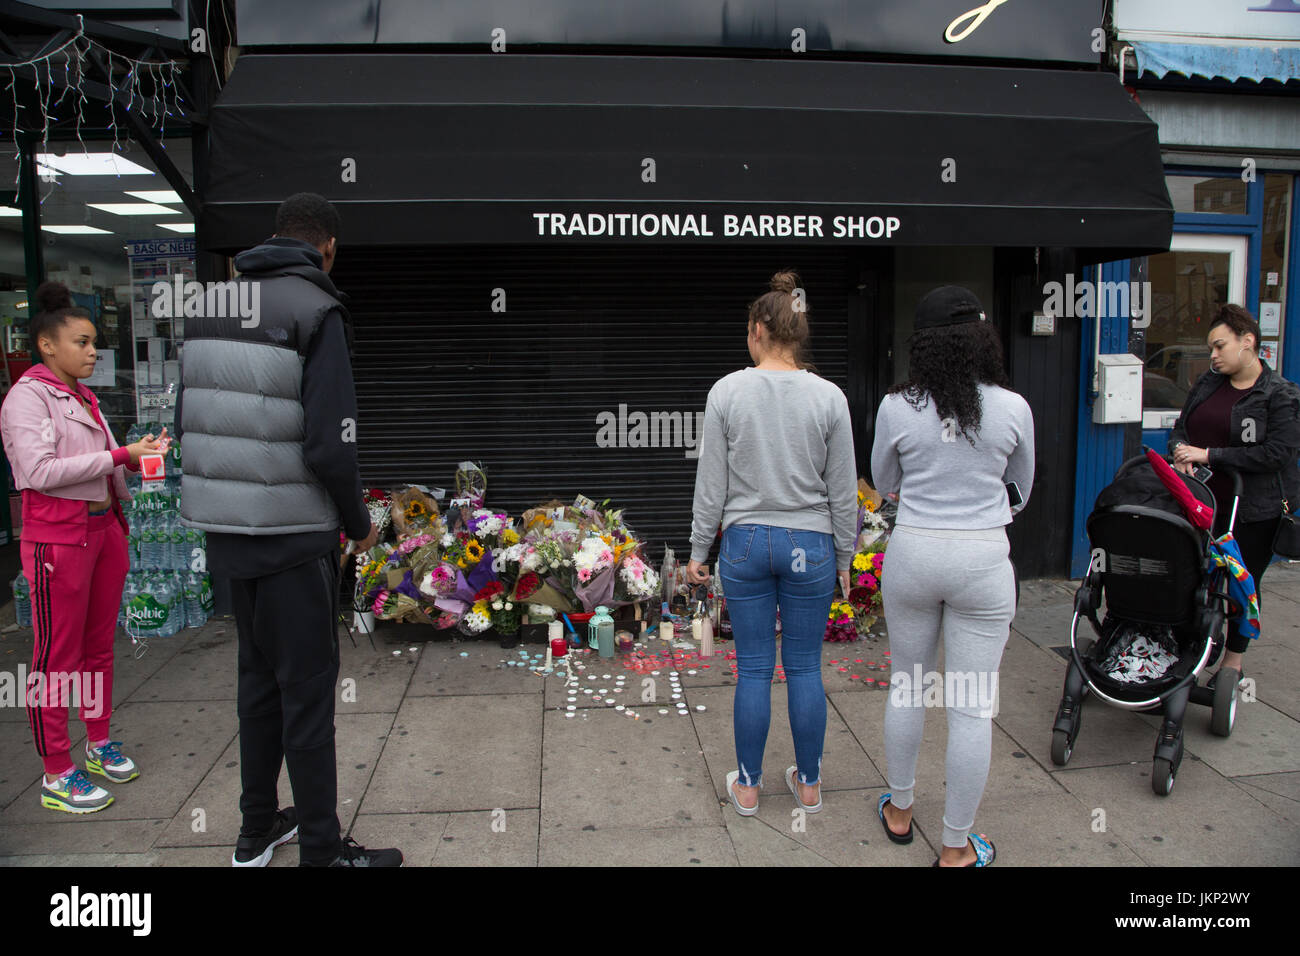 London, UK. 24th July, 2017. People look at floral tributes for Rashan Charles who died after being chased and arrested - Stock Image